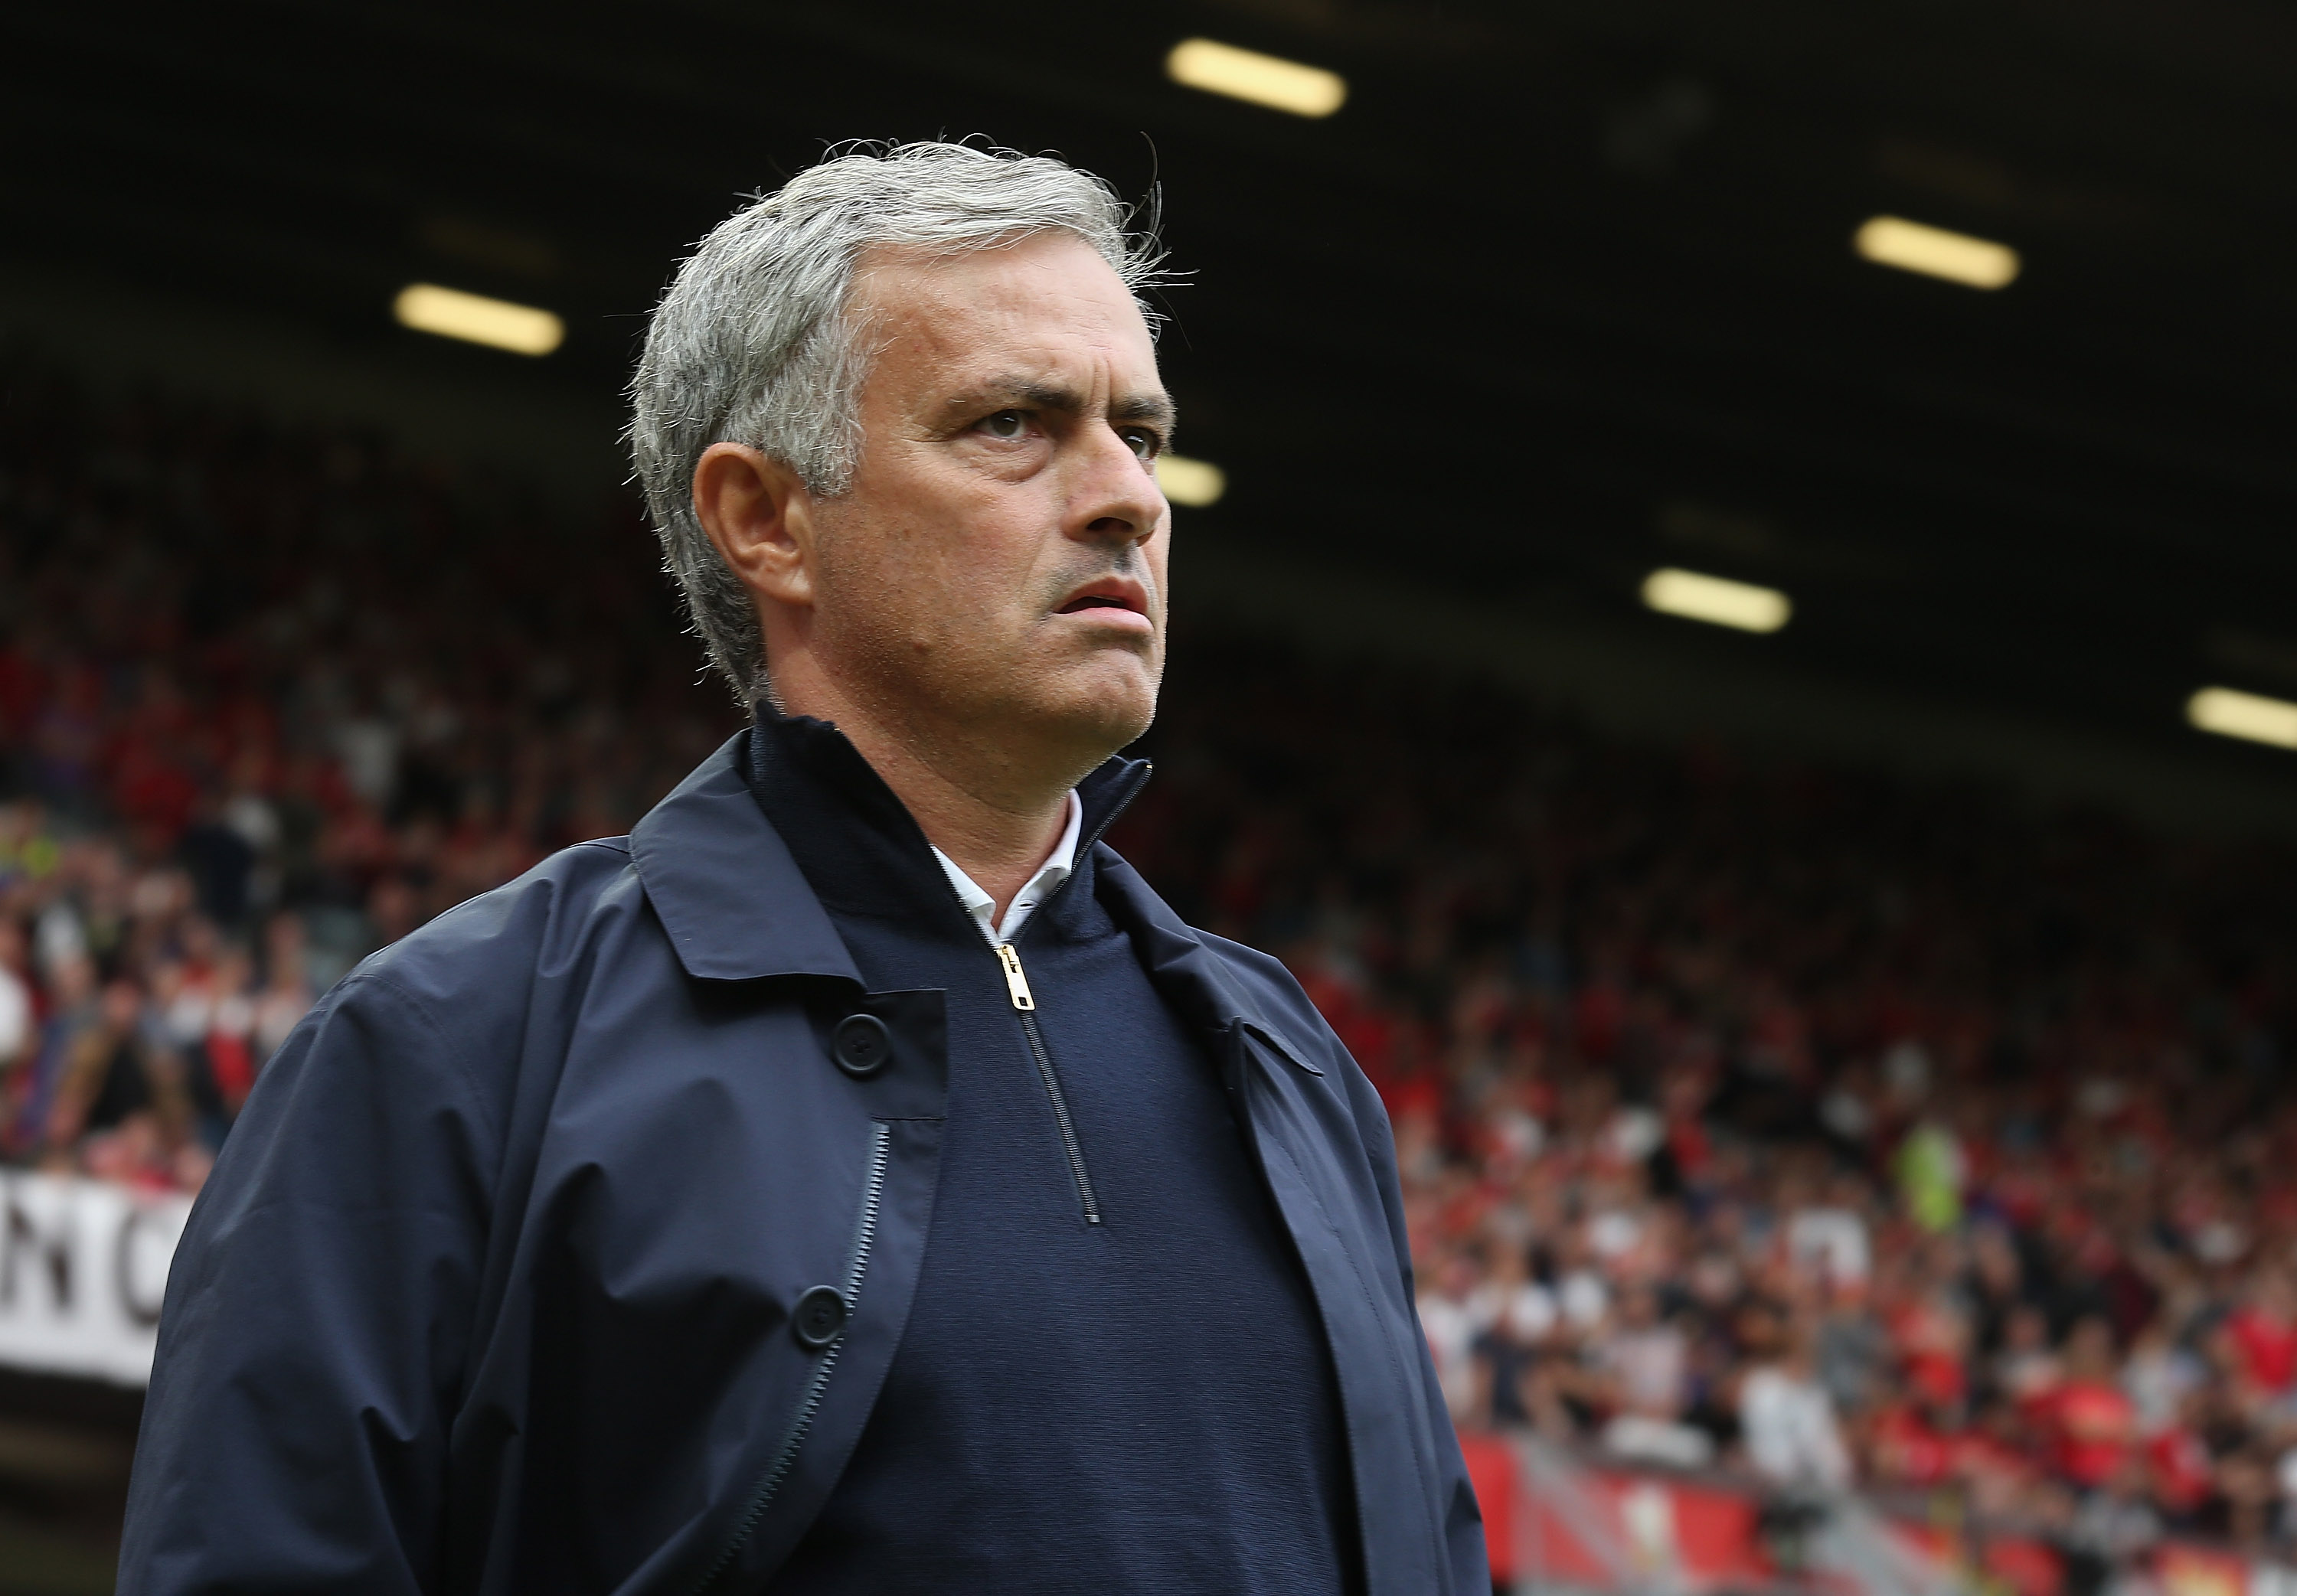 Jose Mourinho slams Manchester United under-performers and Mark Clattenburg after Manchester City loss